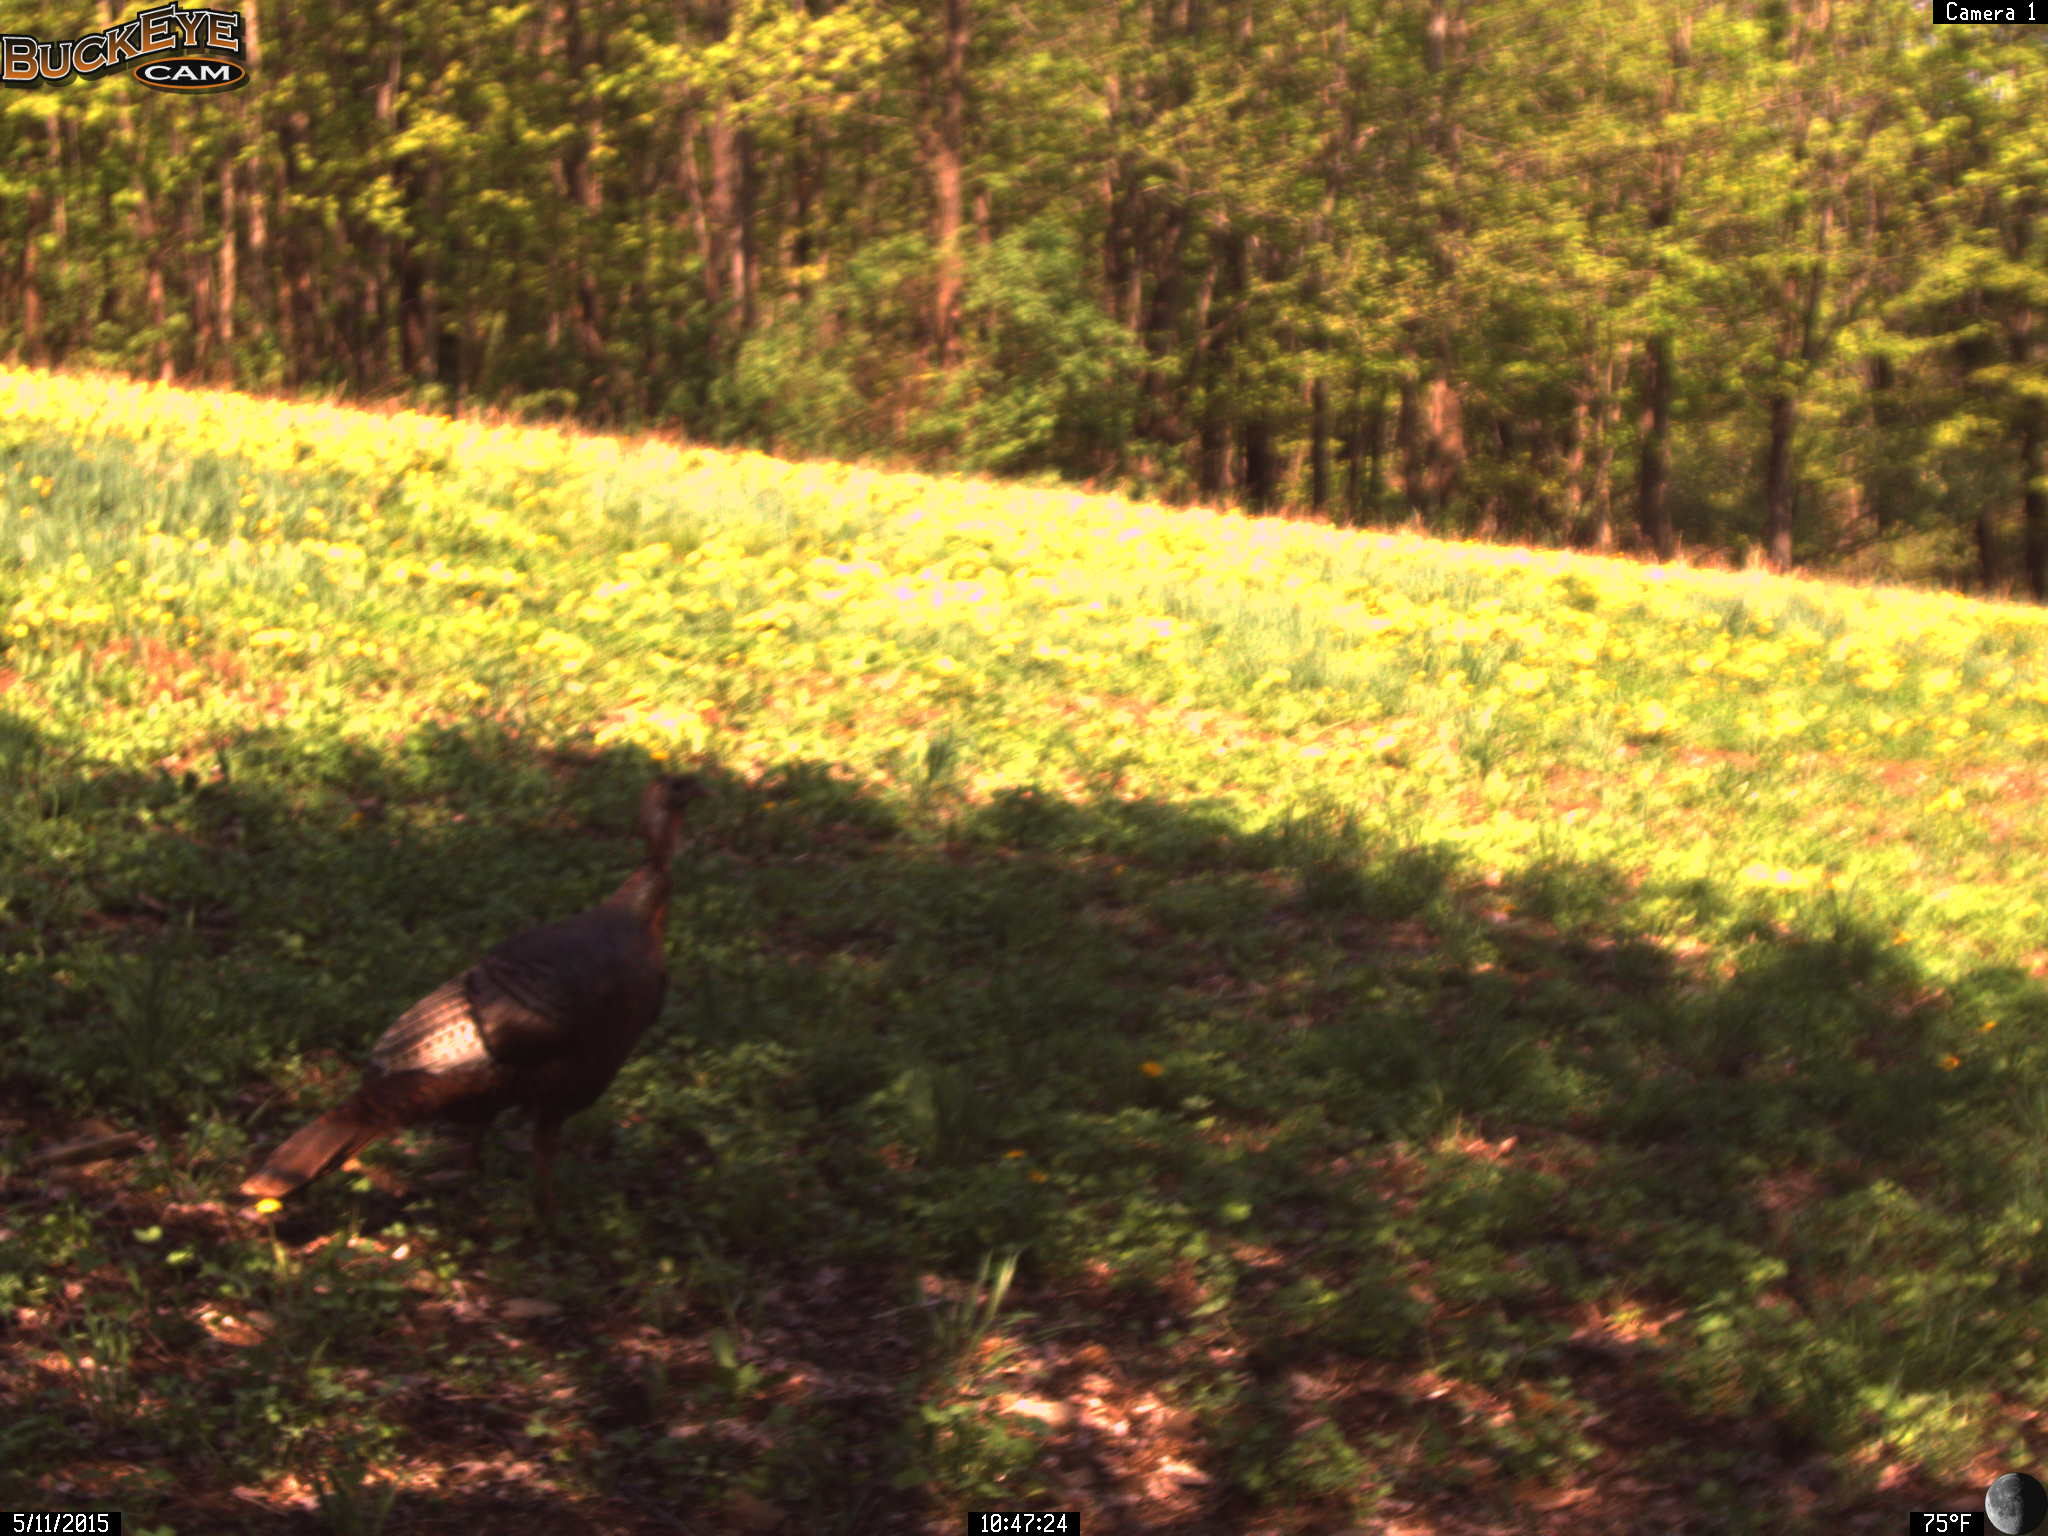 Turkey Visiting the Newly Planted Clover!